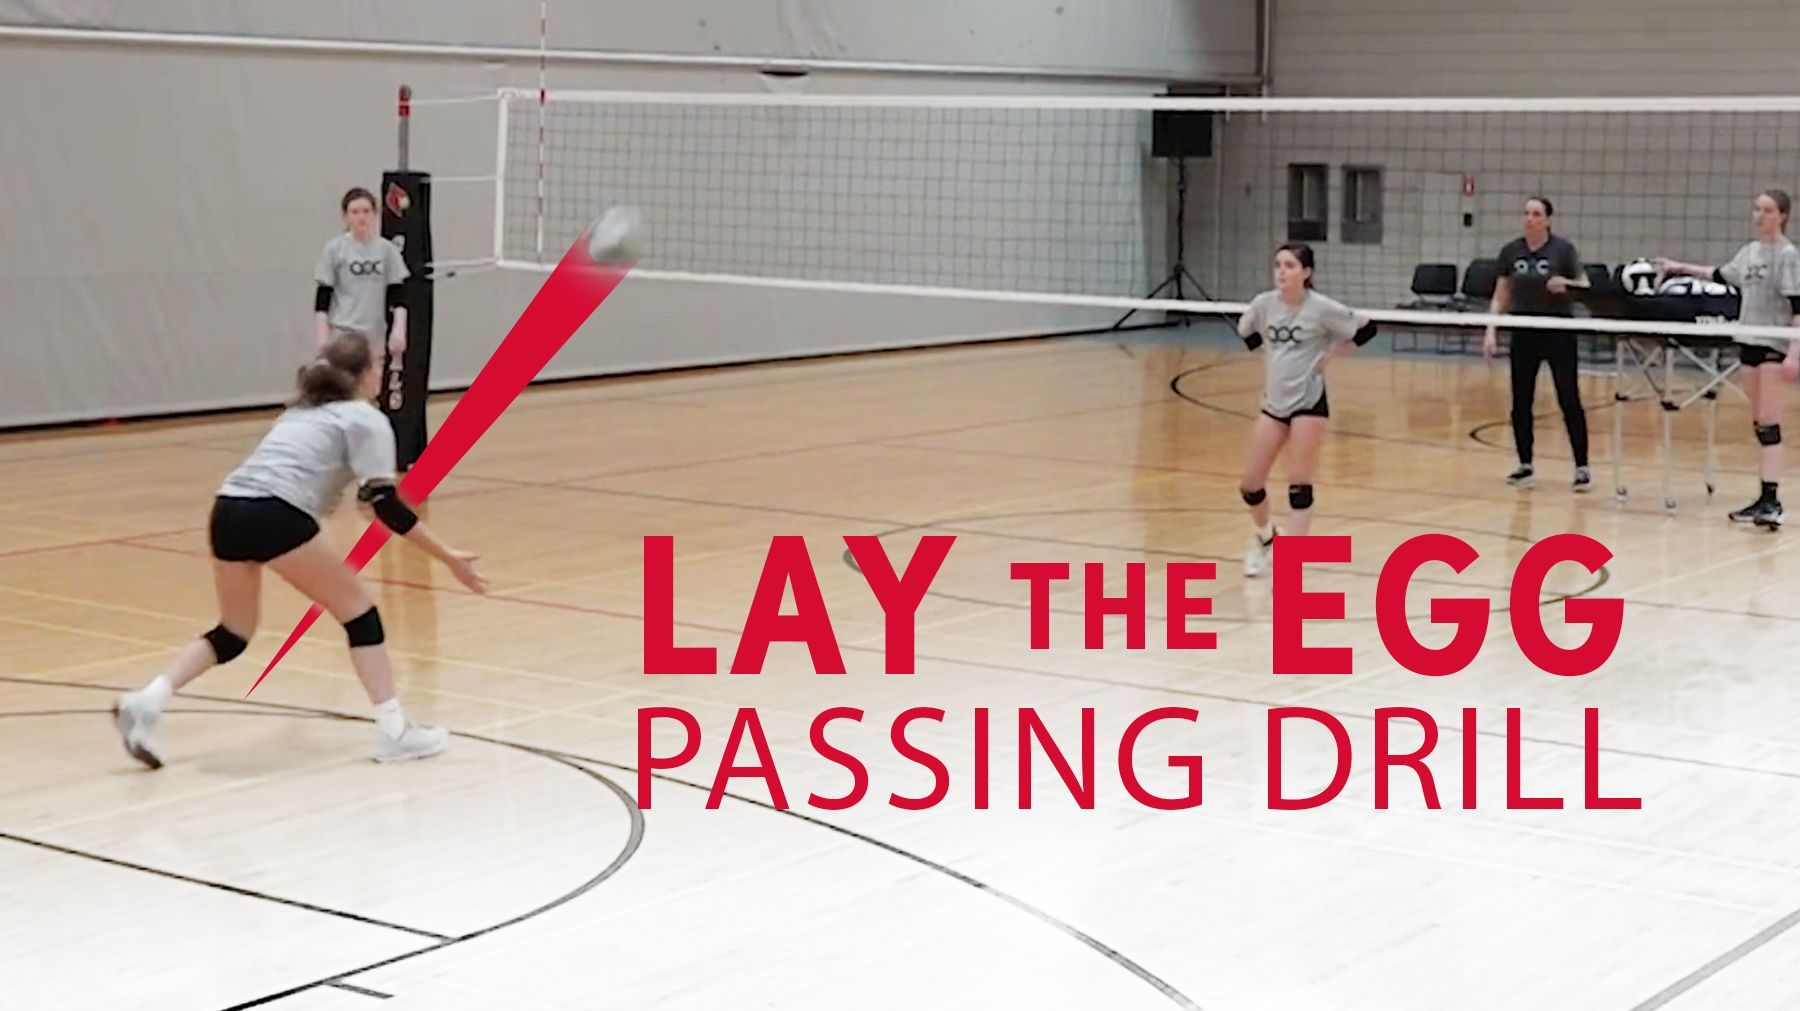 Lay The Egg Passing Drill The Art Of Coaching Volleyball Volleyball Practice Volleyball Workouts Coaching Volleyball